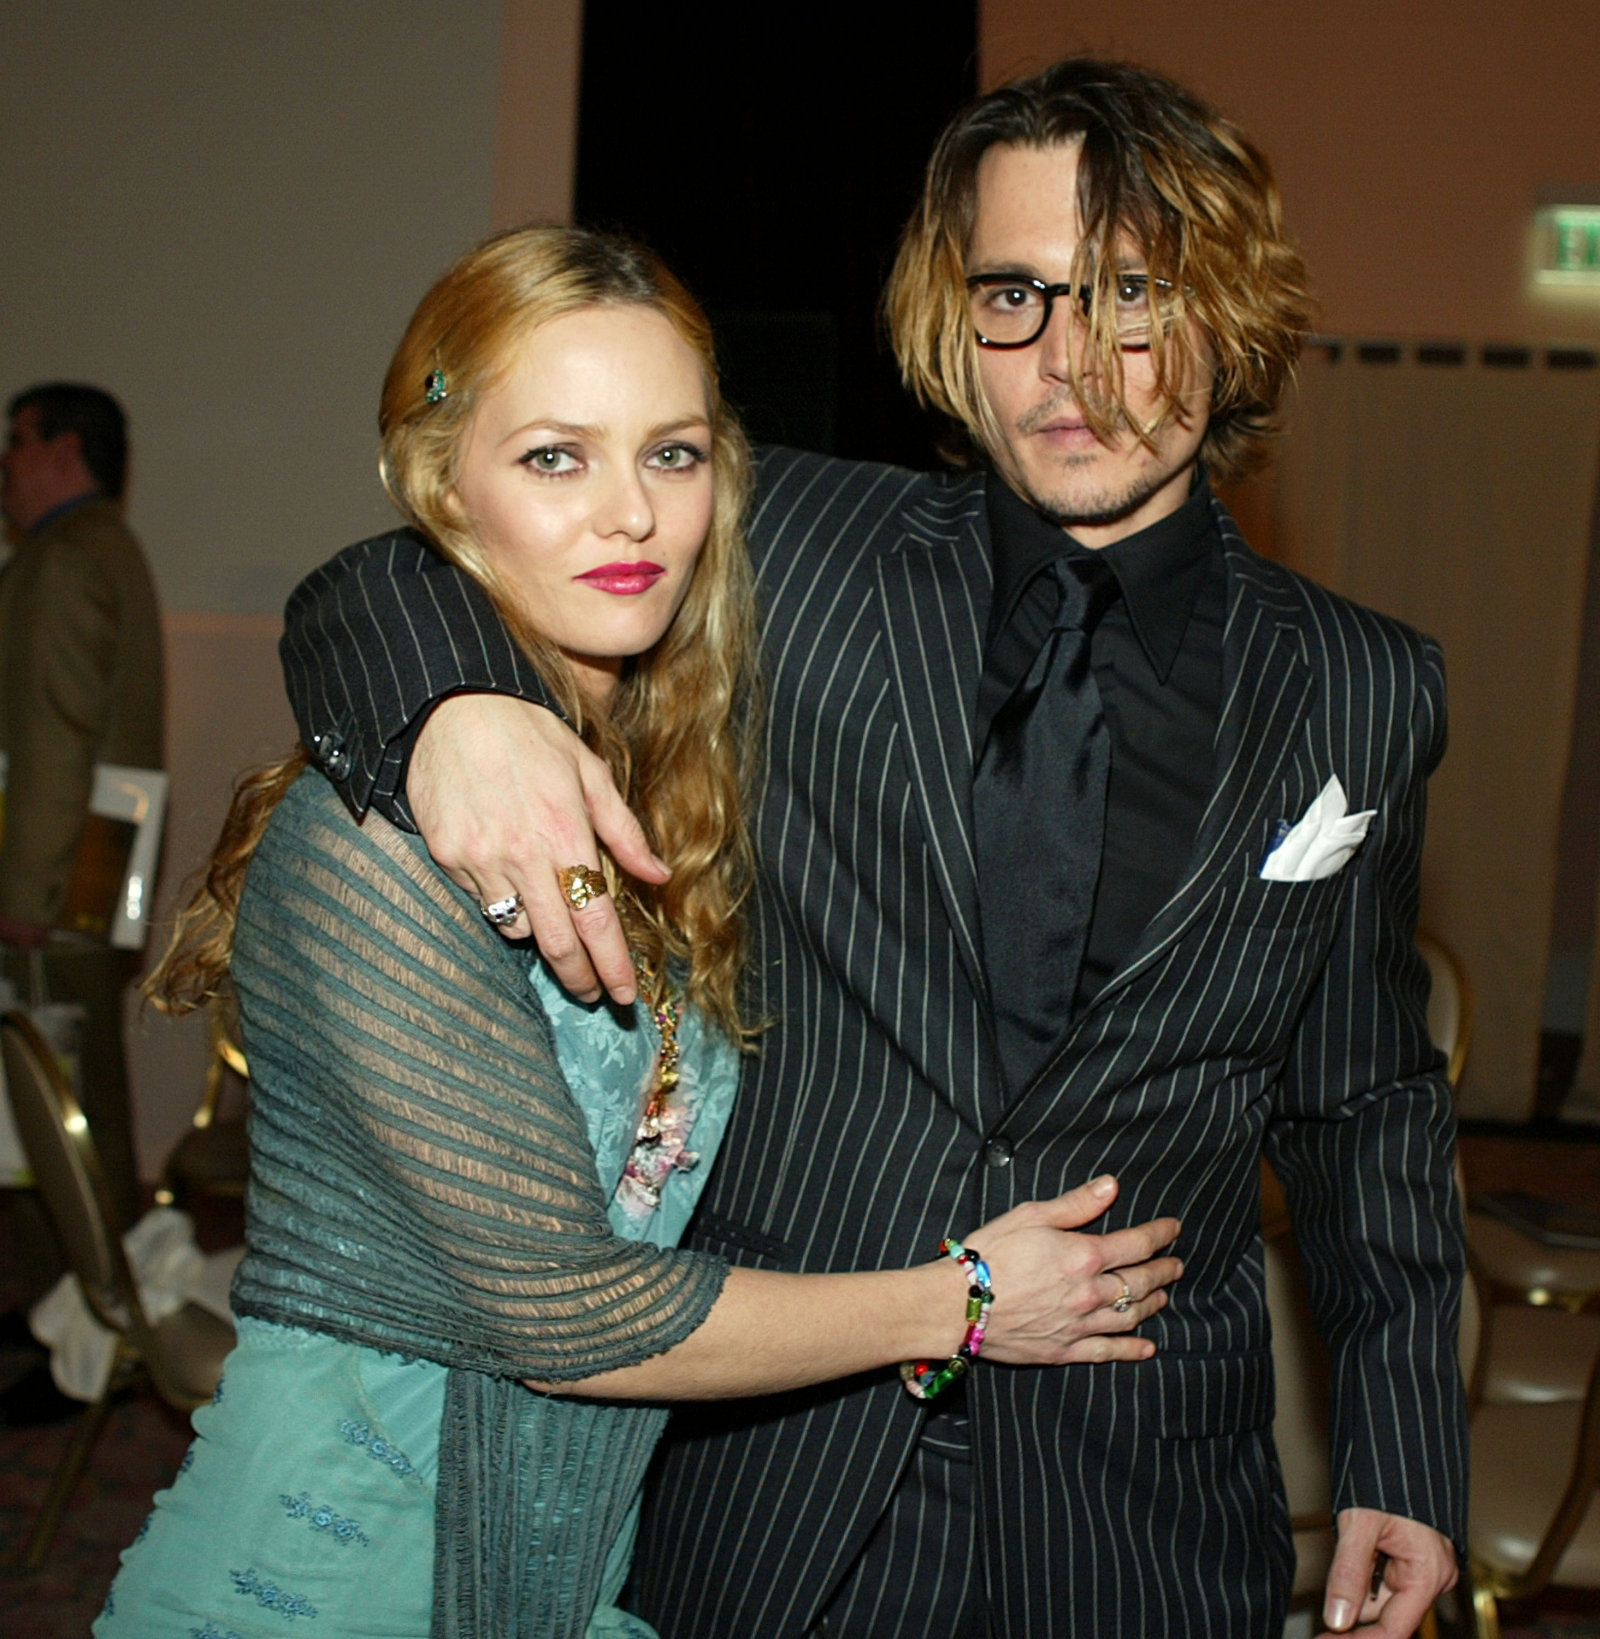 Vanessa Paradis and Johnny Depp